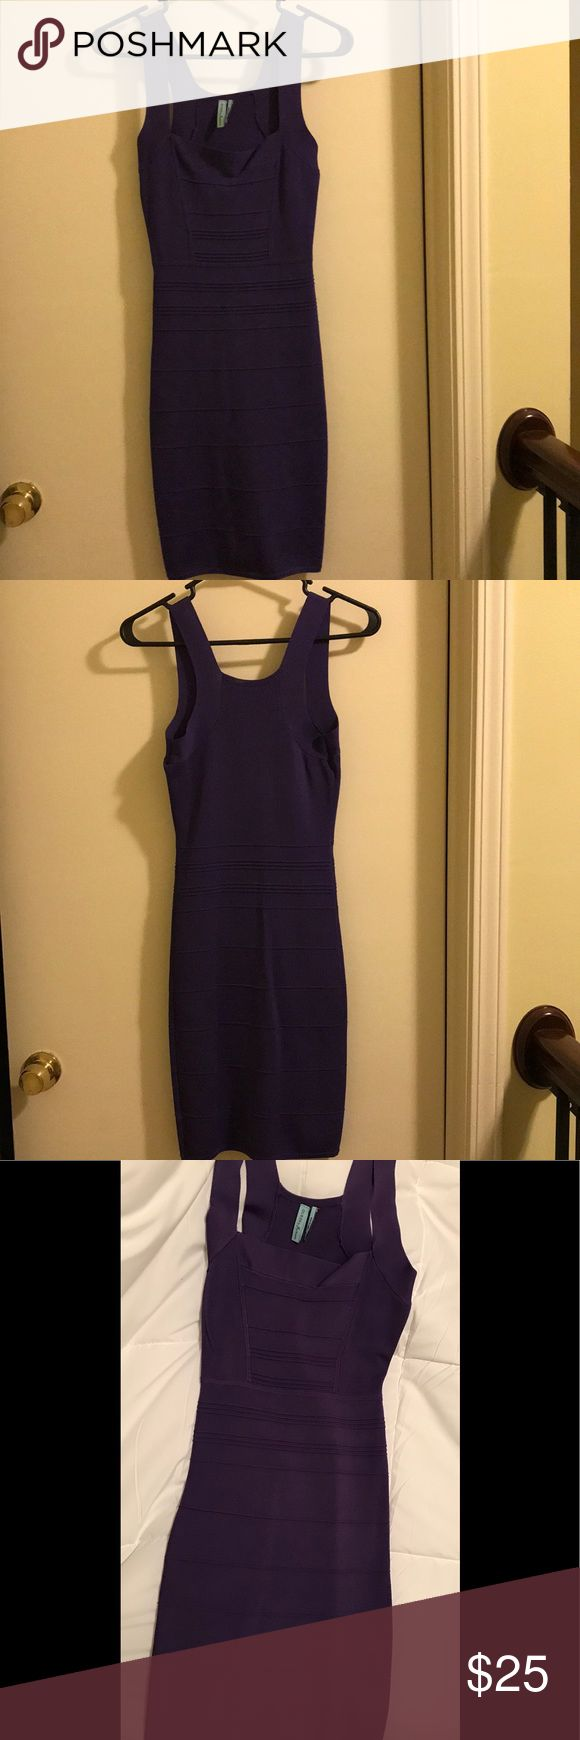 Guess by Marciano Bandage Dress purple Cute purple Bandage dress from Guess by Marciano. XS. Worn once- excellent condition. Guess by Marciano Dresses Midi